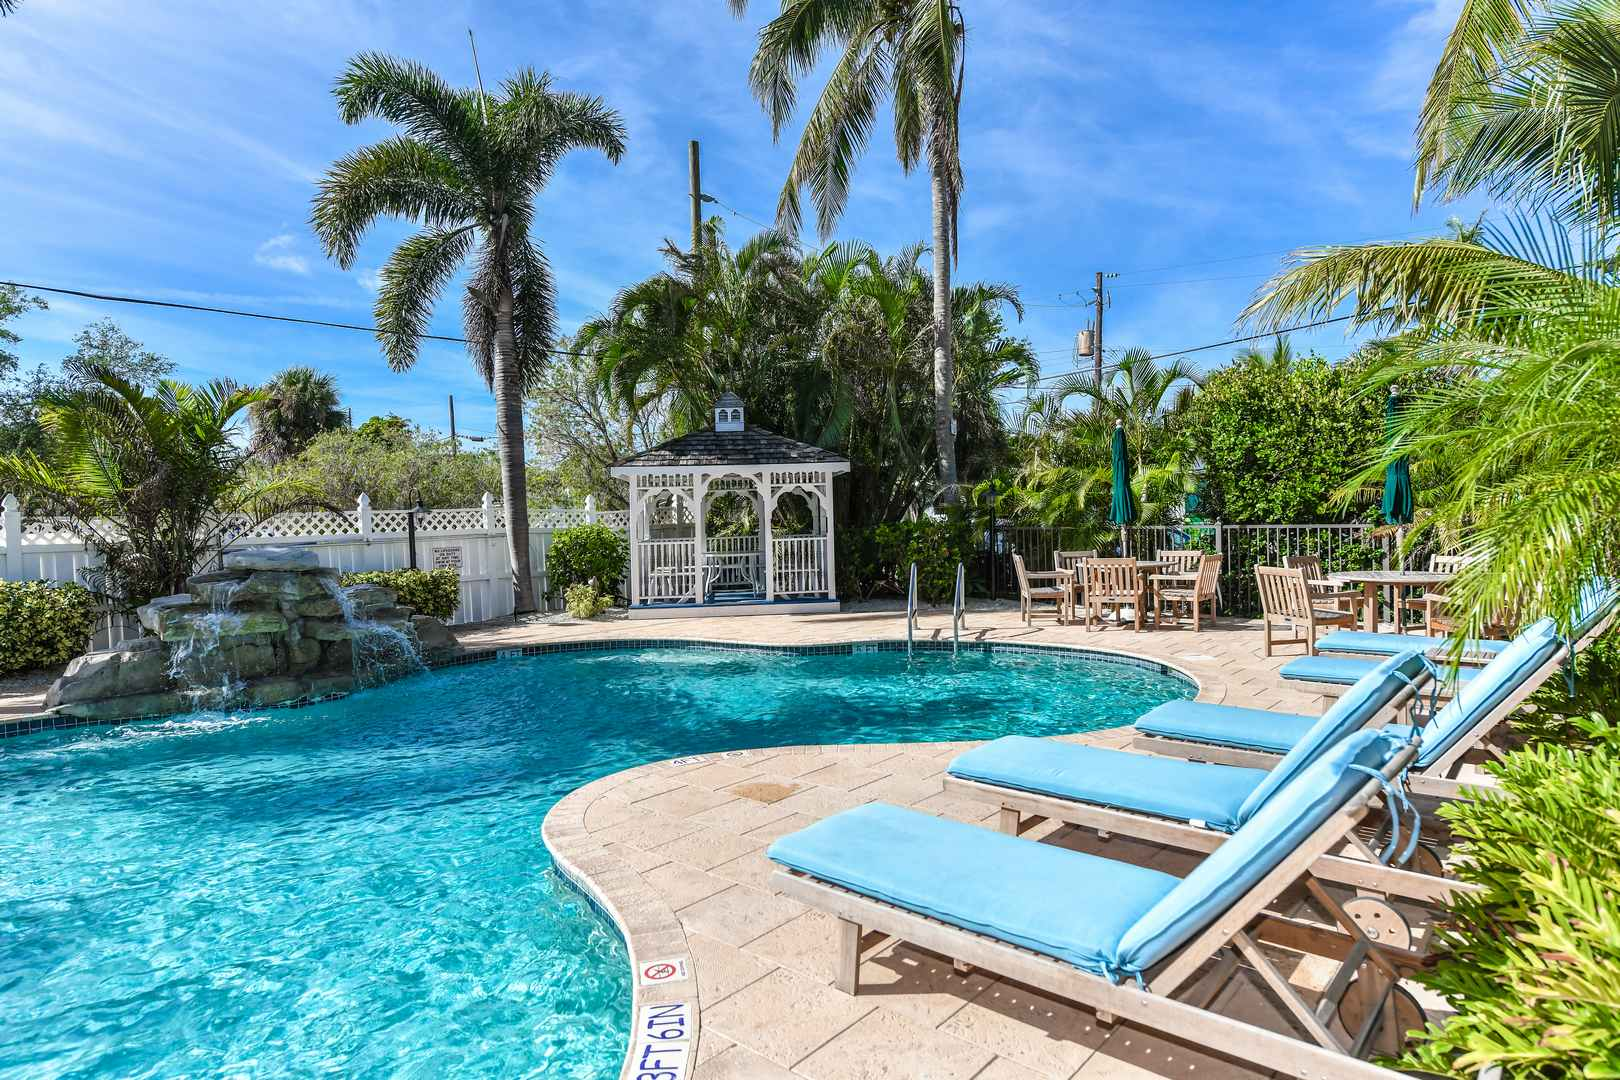 The Keys House Pool and Spa - Just outside your door